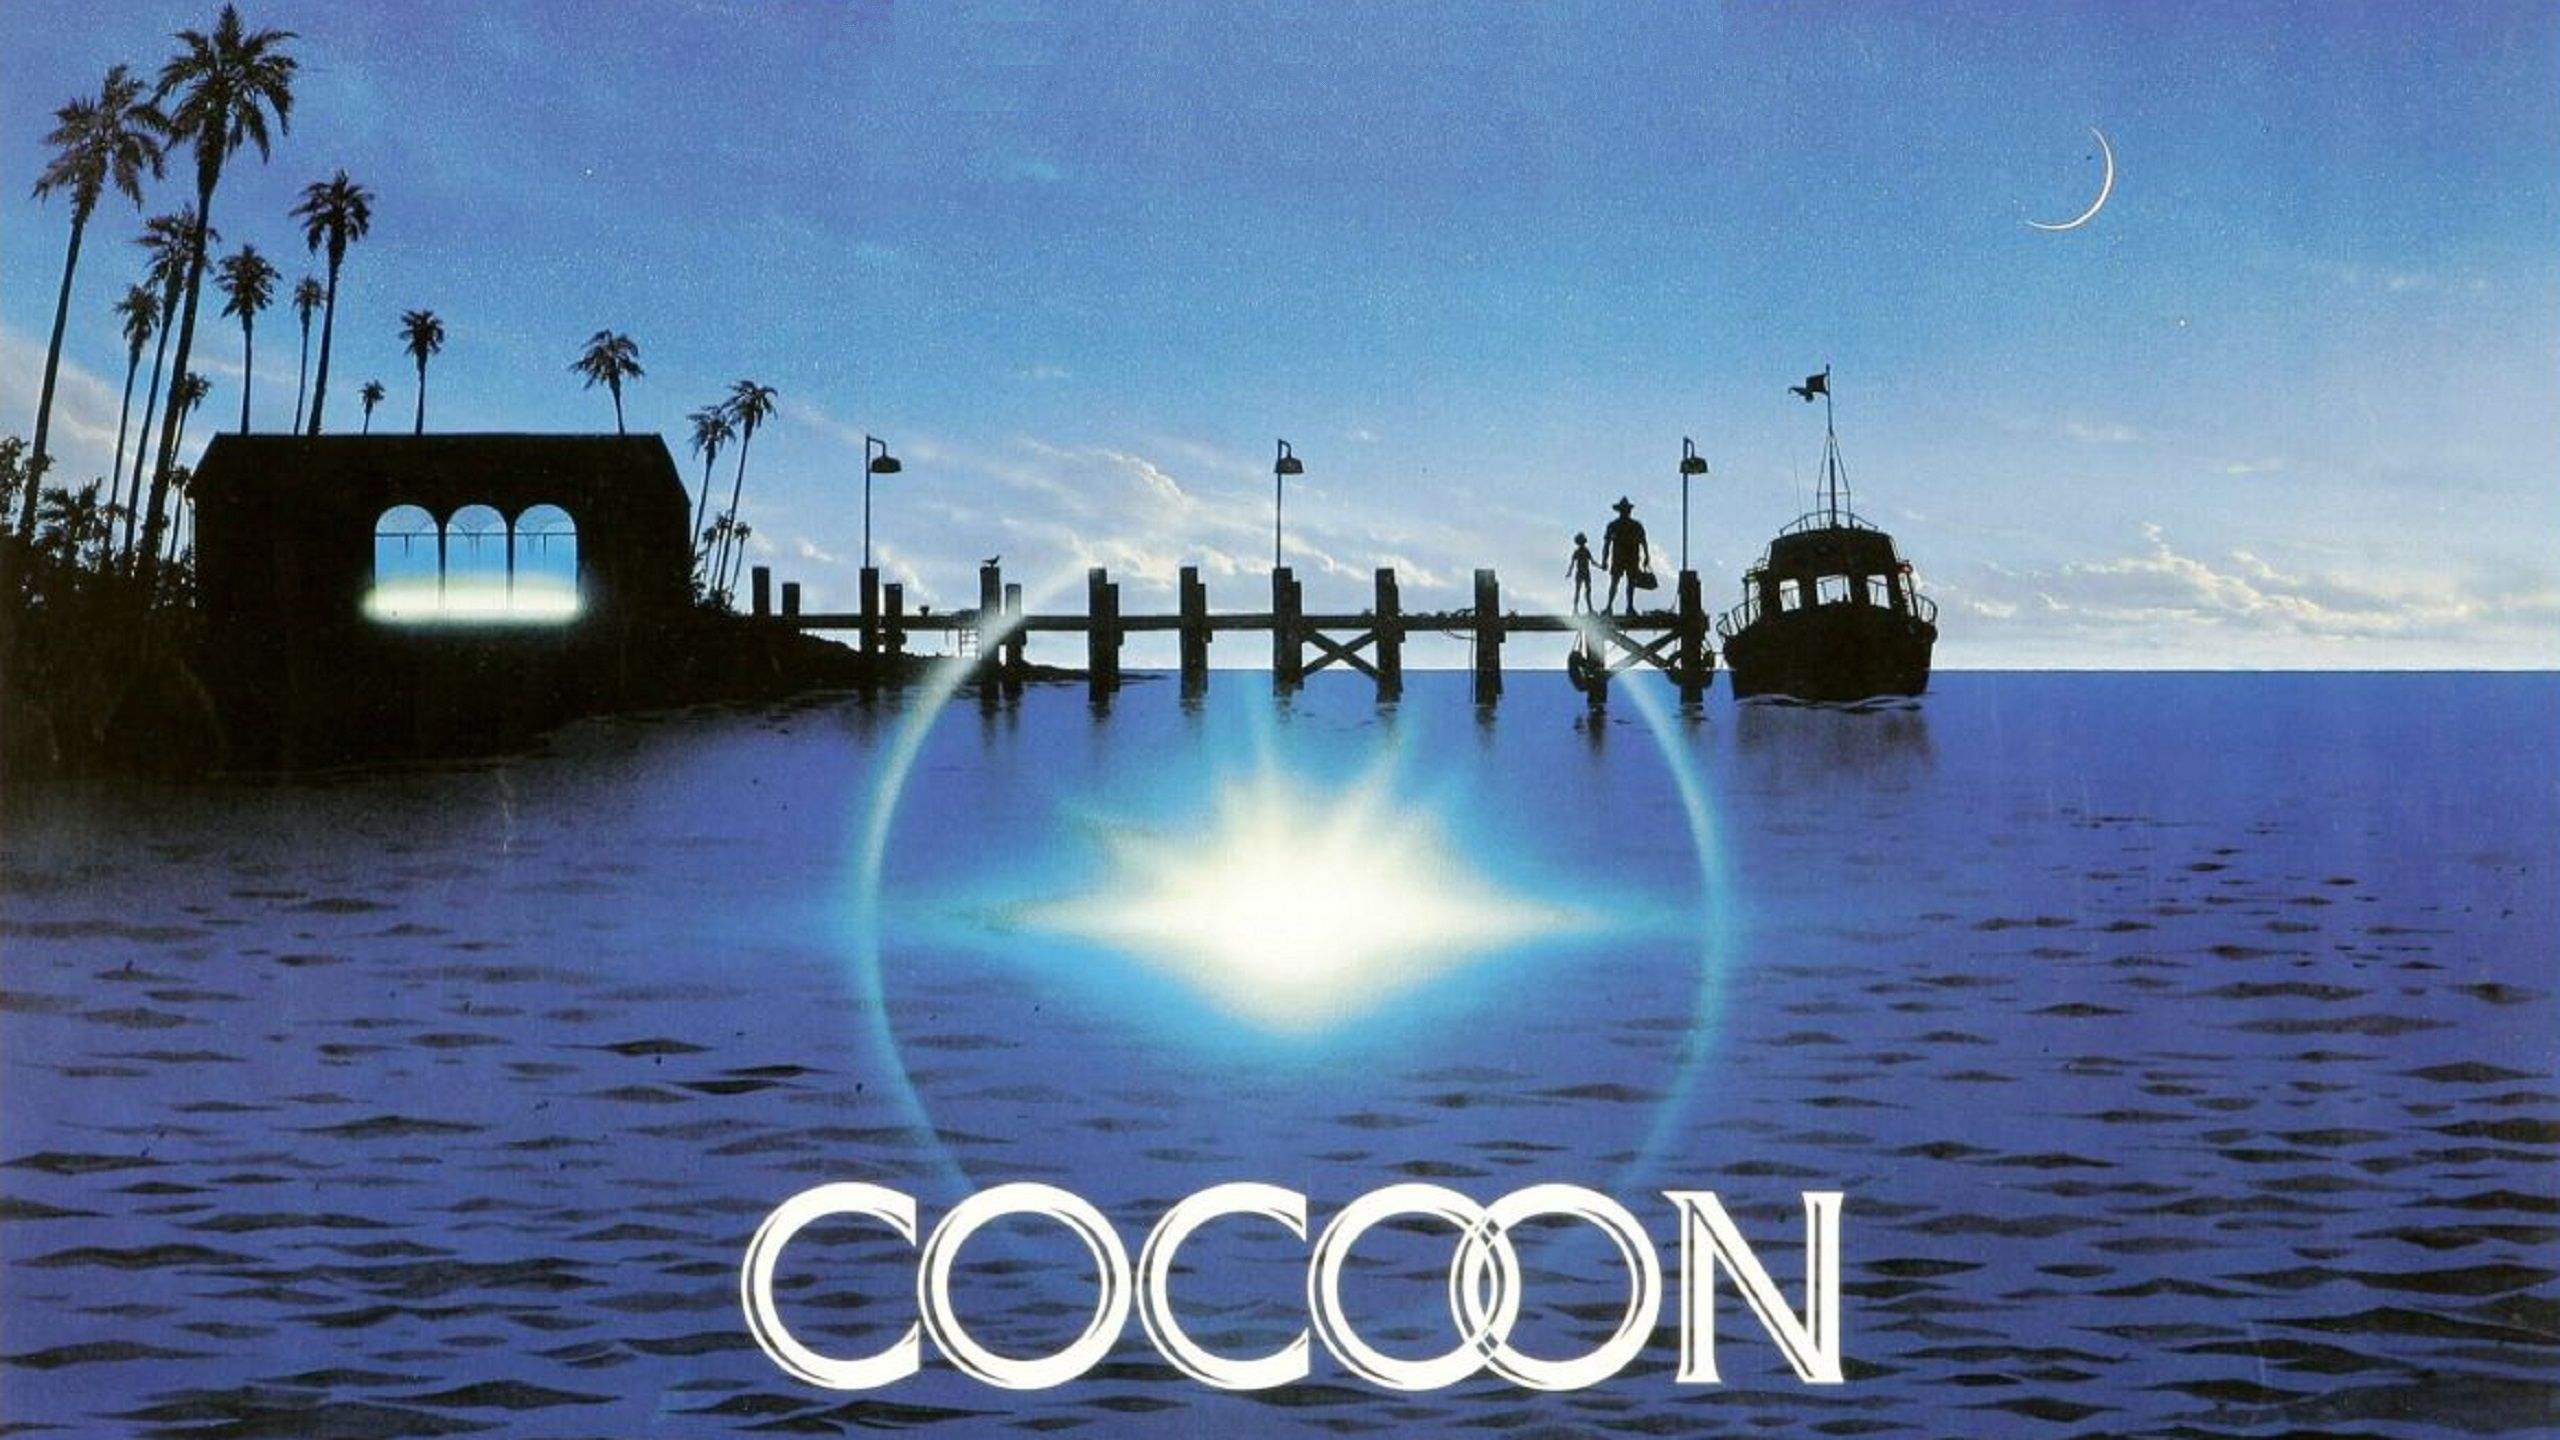 Cocoon 1985 wallpaper and poster